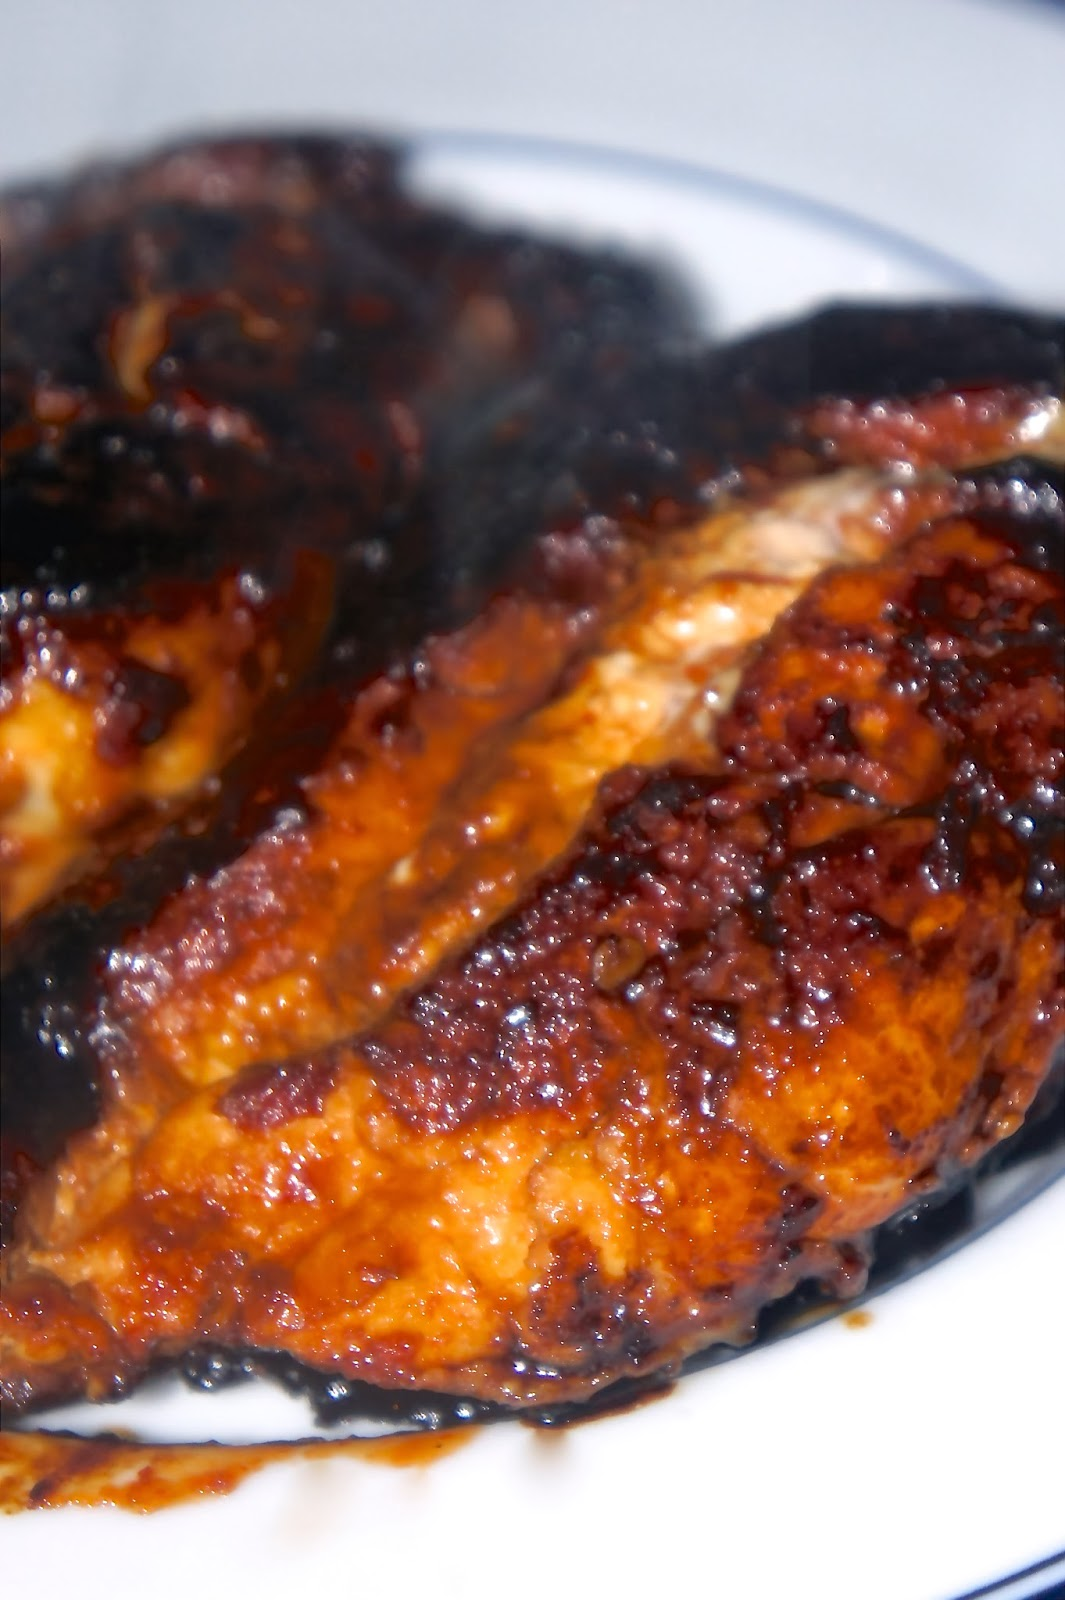 Savory Sweet and Satisfying: Sriracha Glazed Chicken